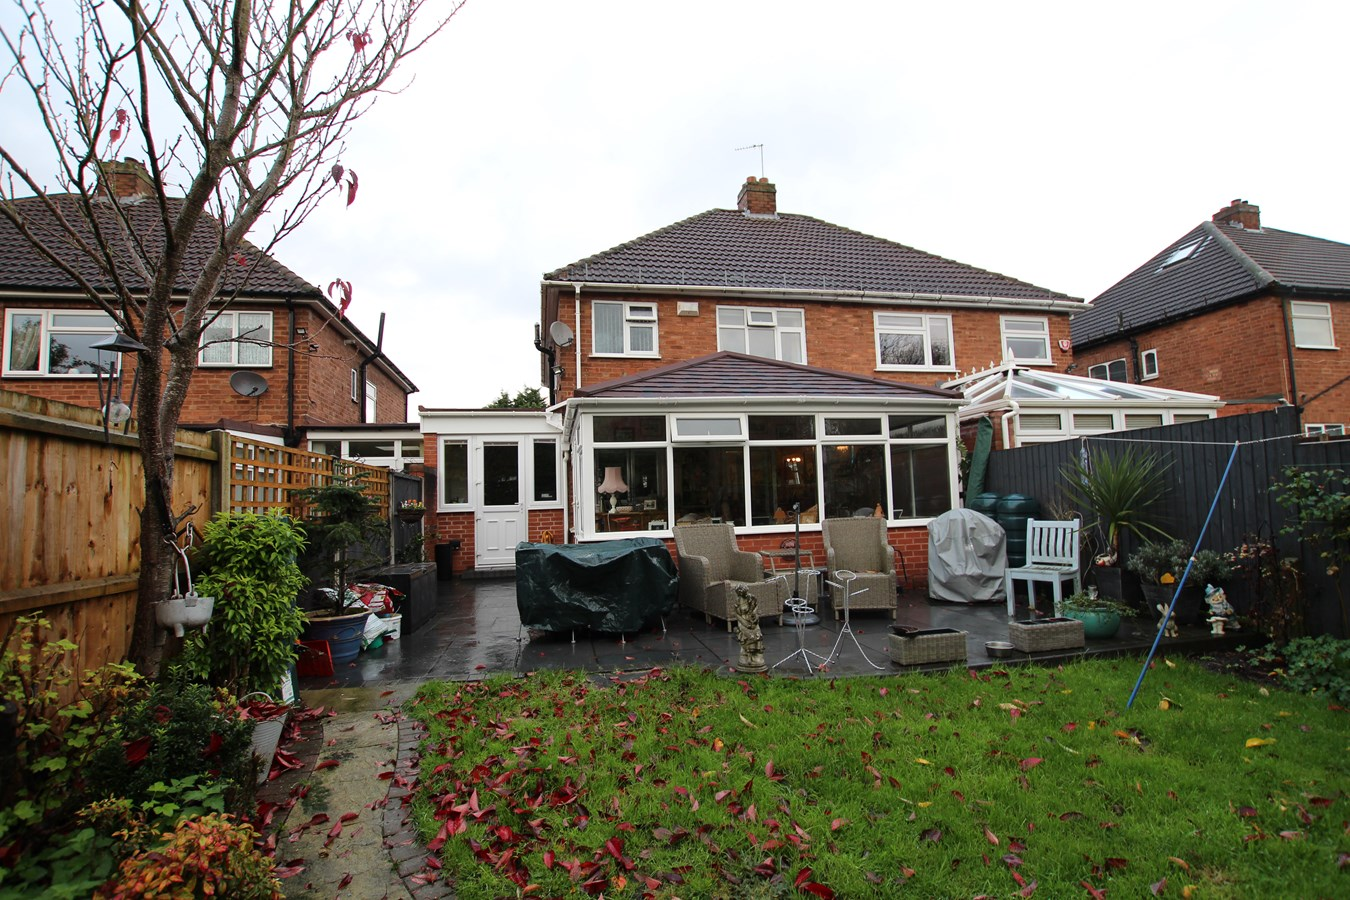 3 Bedroom Semi Detached House For Sale In Sutton Coldfield